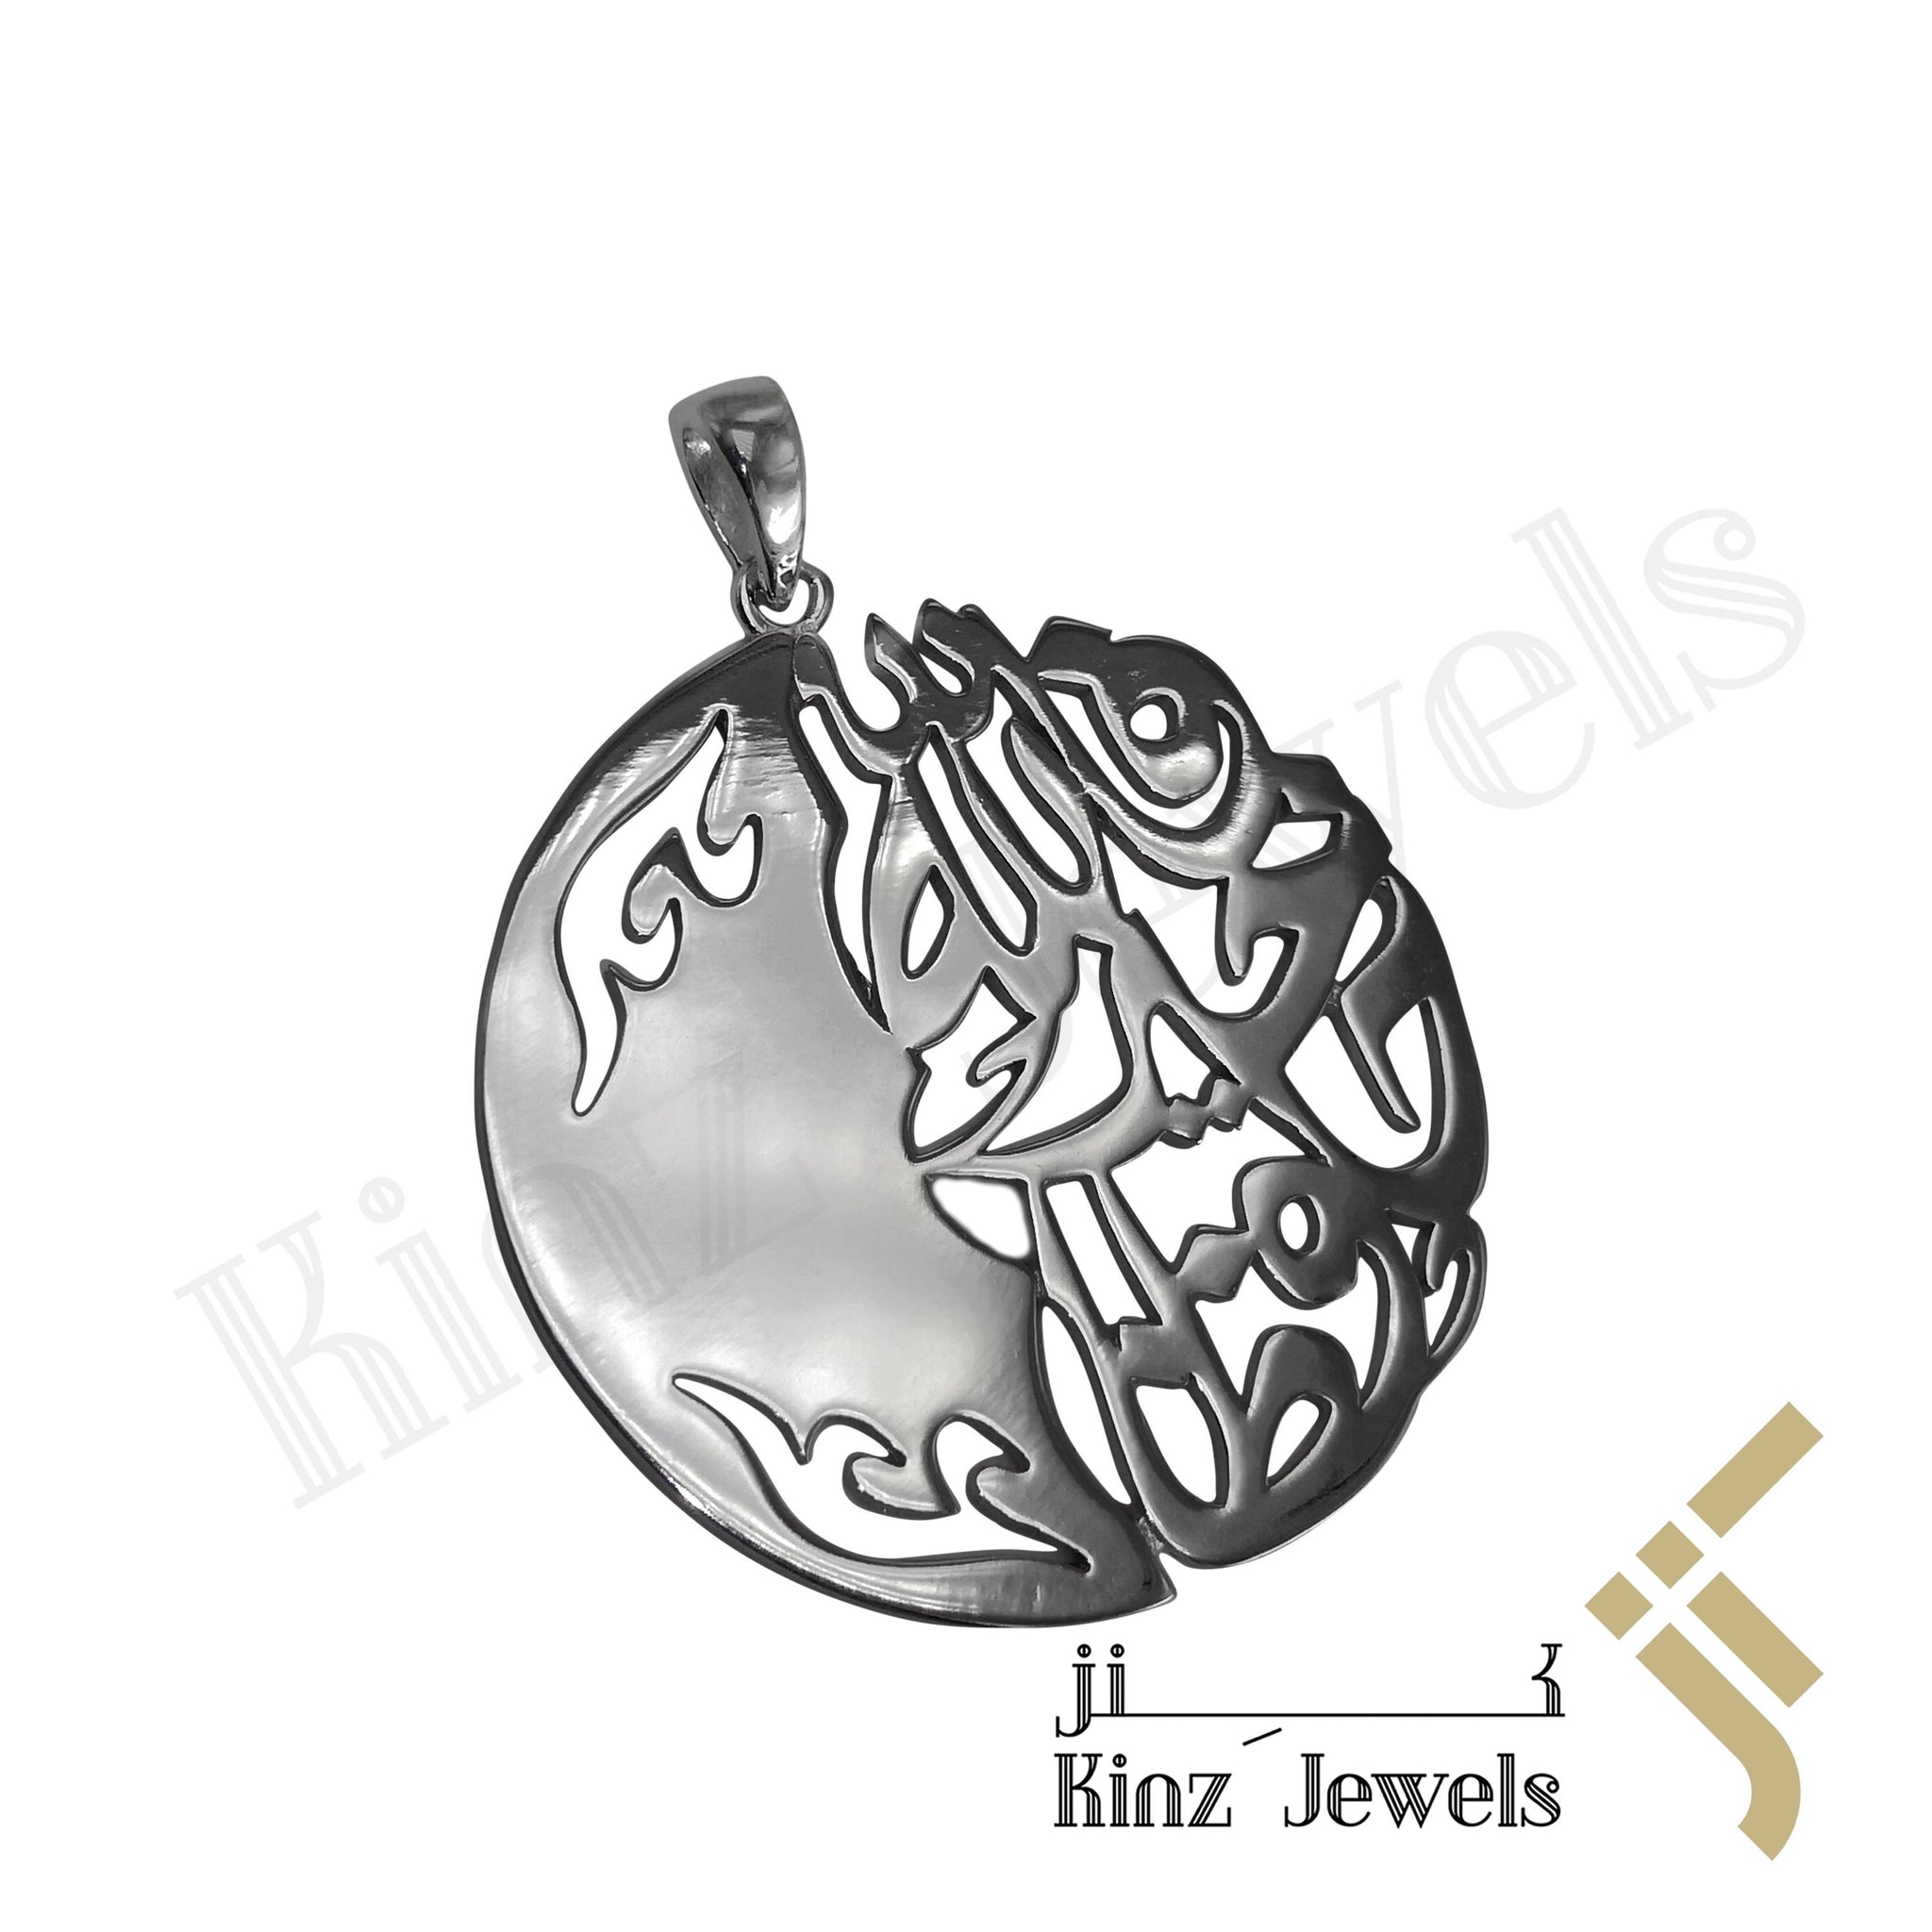 kinzjewels - Kinz Personalized Hand Engraving Sterling Silver Peach Pendant - But Allah Is The Best Keeper